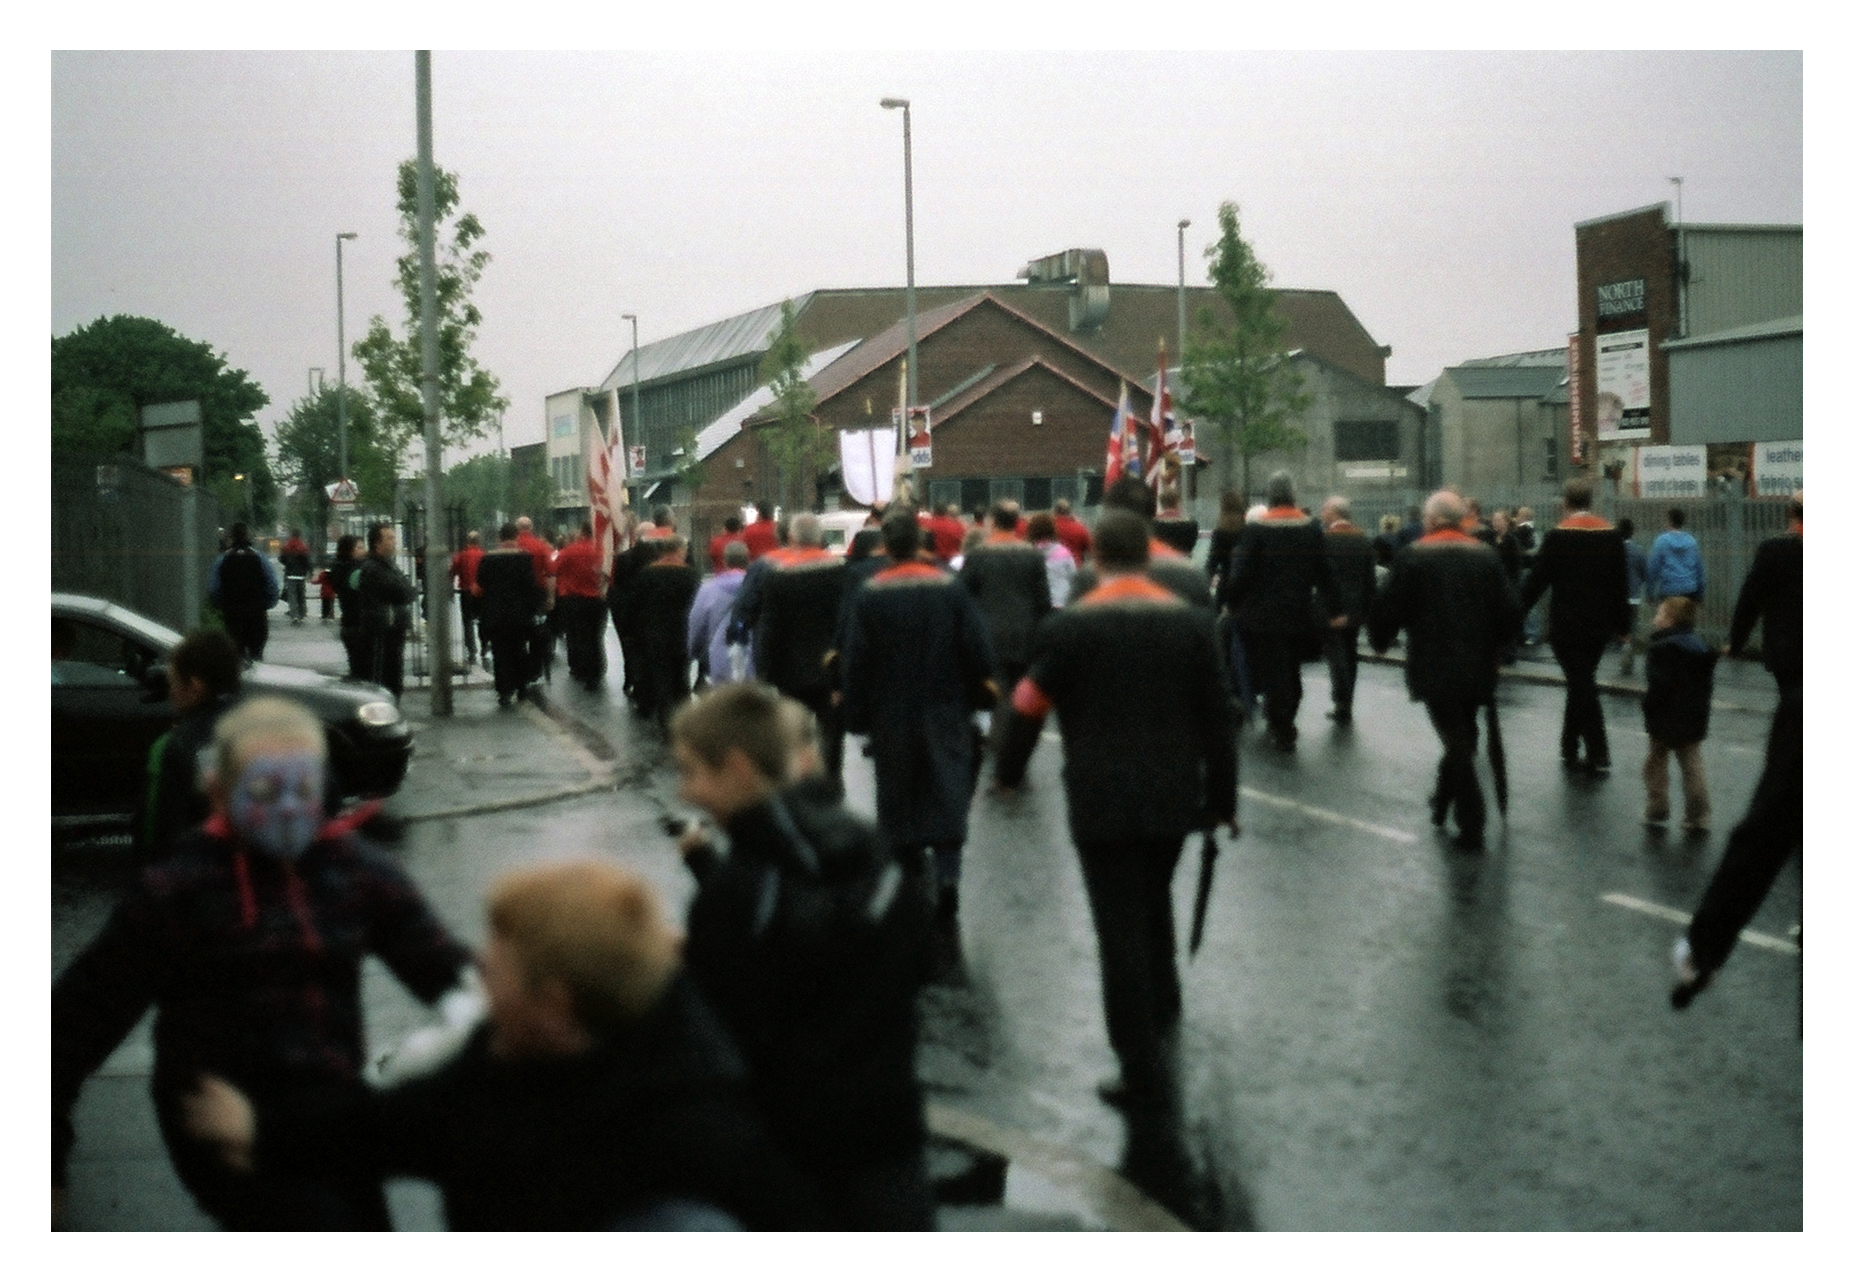 NorthQueenStreet_OrangeOrder_March_Children_bdr.jpg